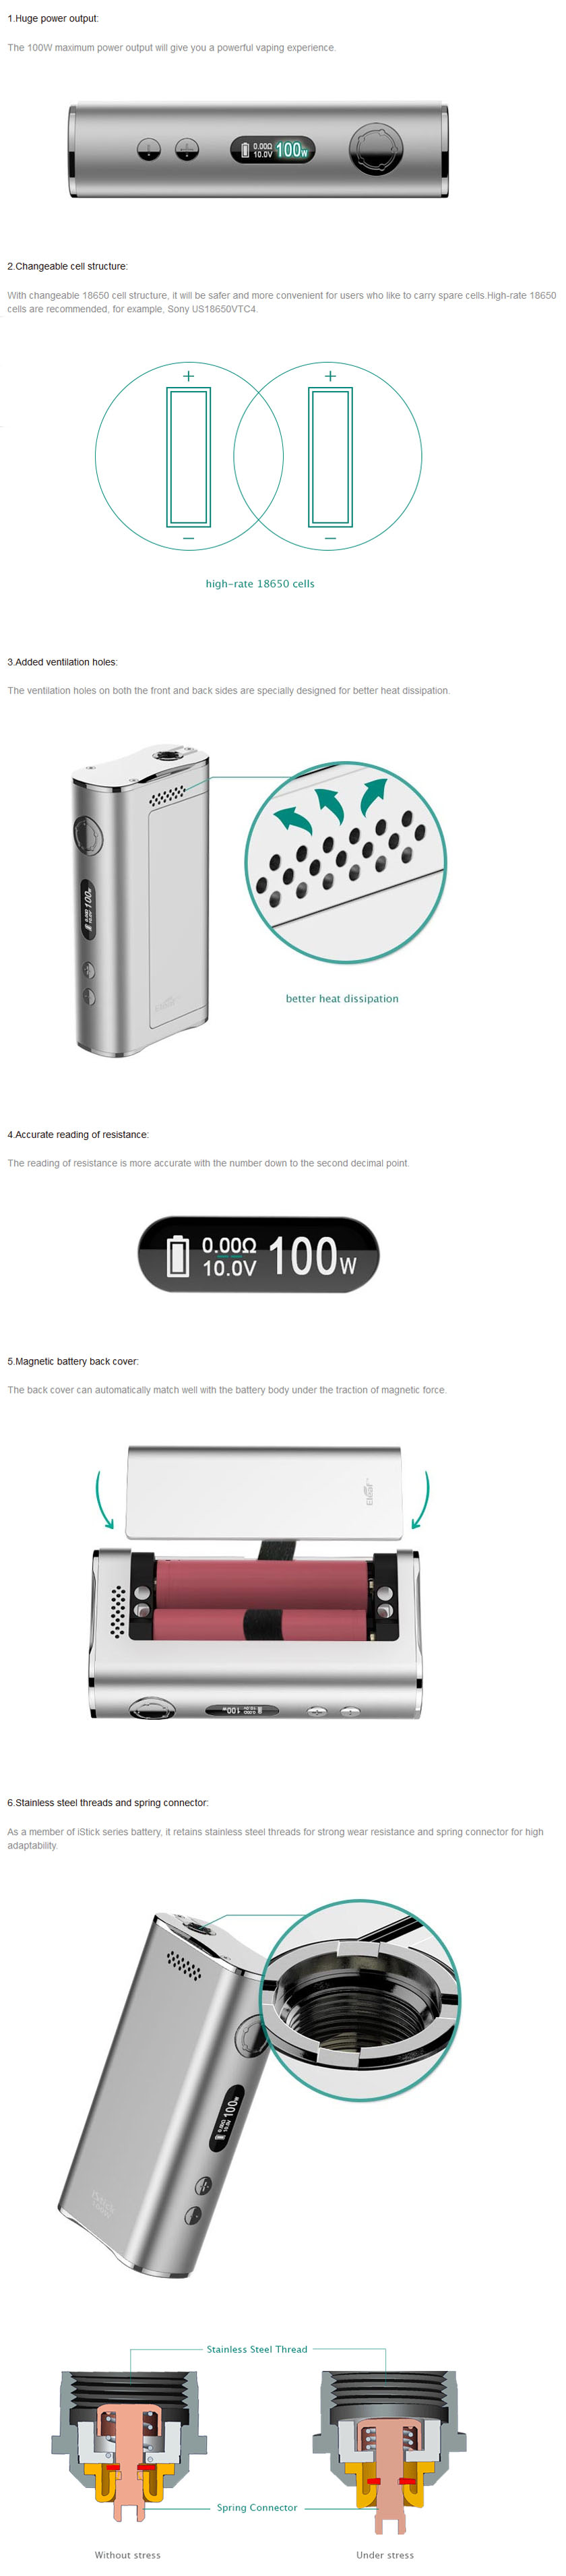 iStick 100W Features